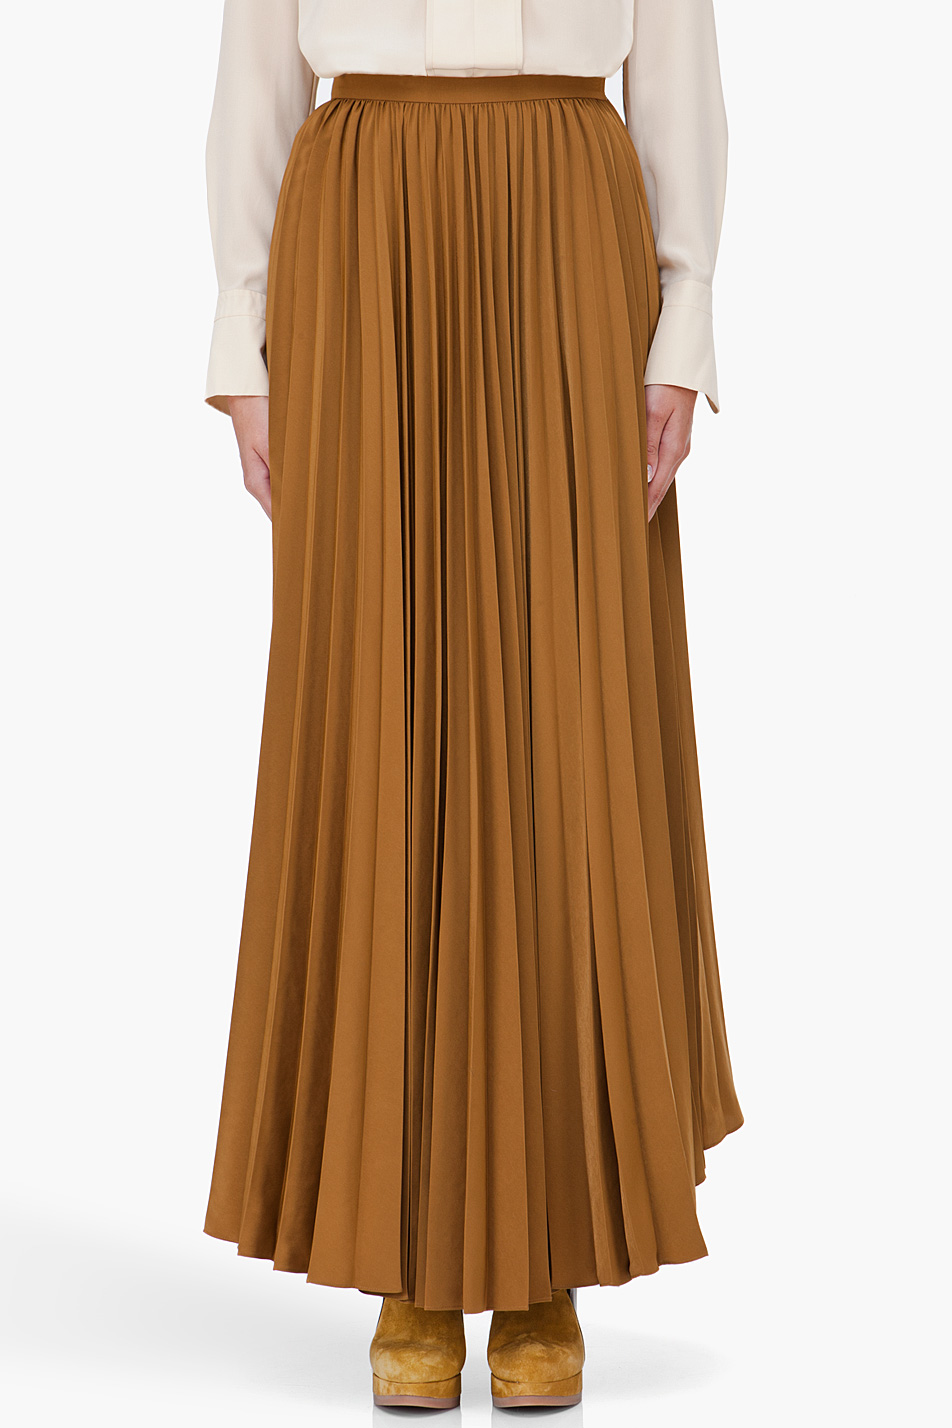 Kenzo Long Bronze Pleated Skirt in Brown | Lyst